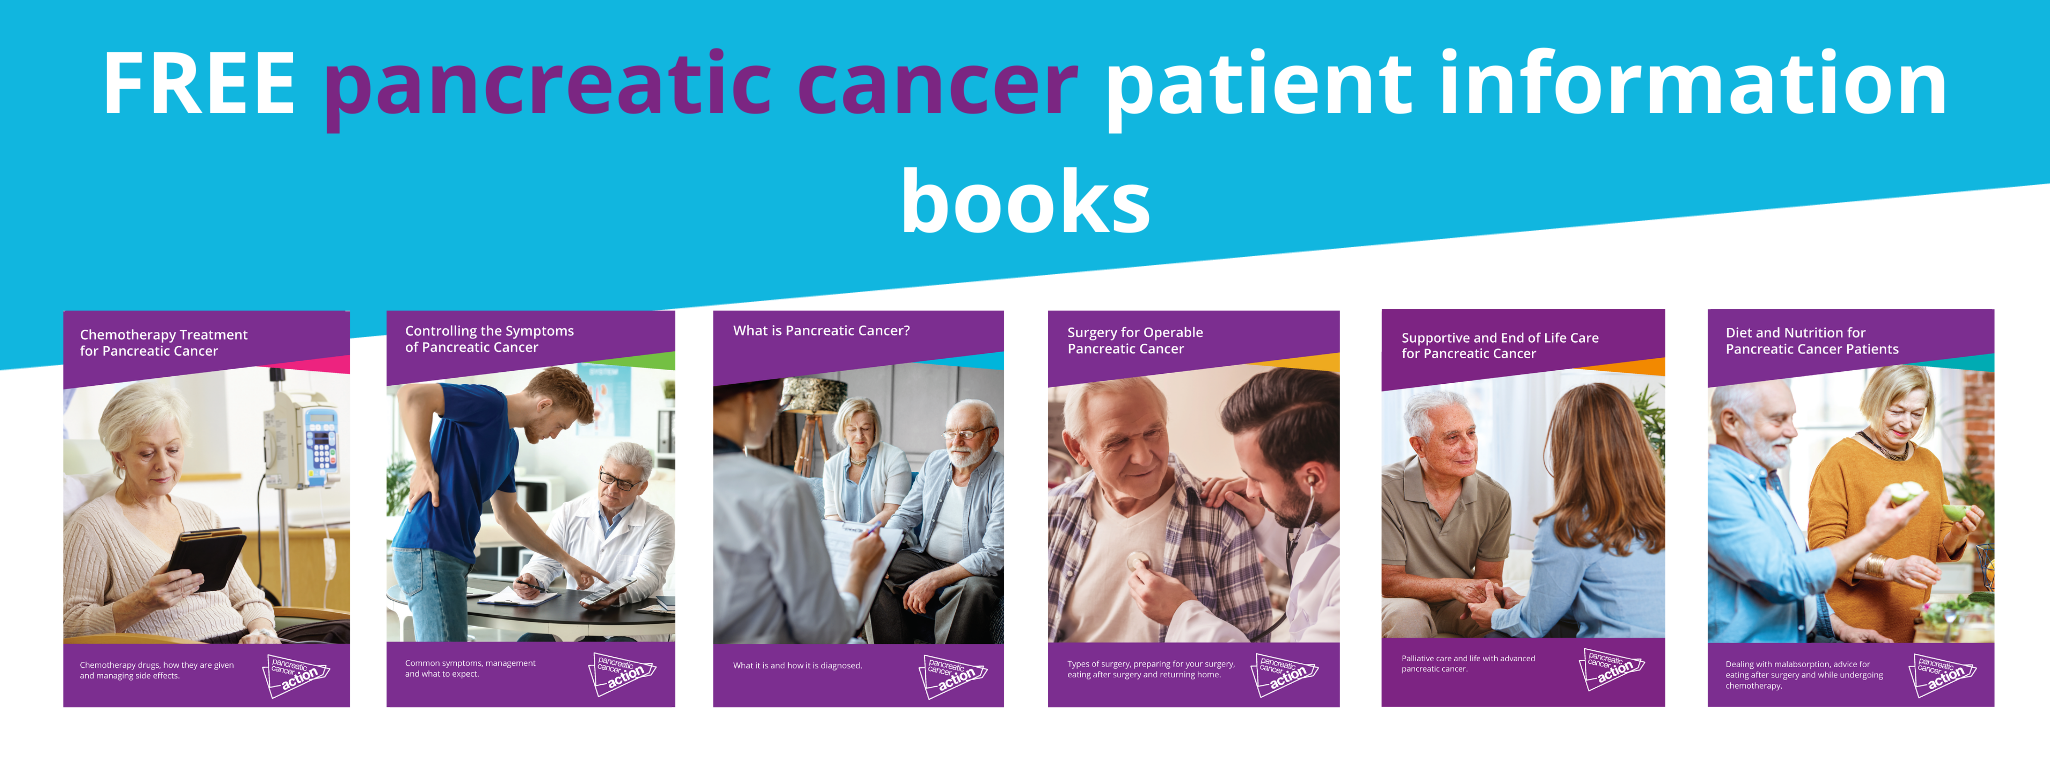 Cancer charity launches new patient information booklets